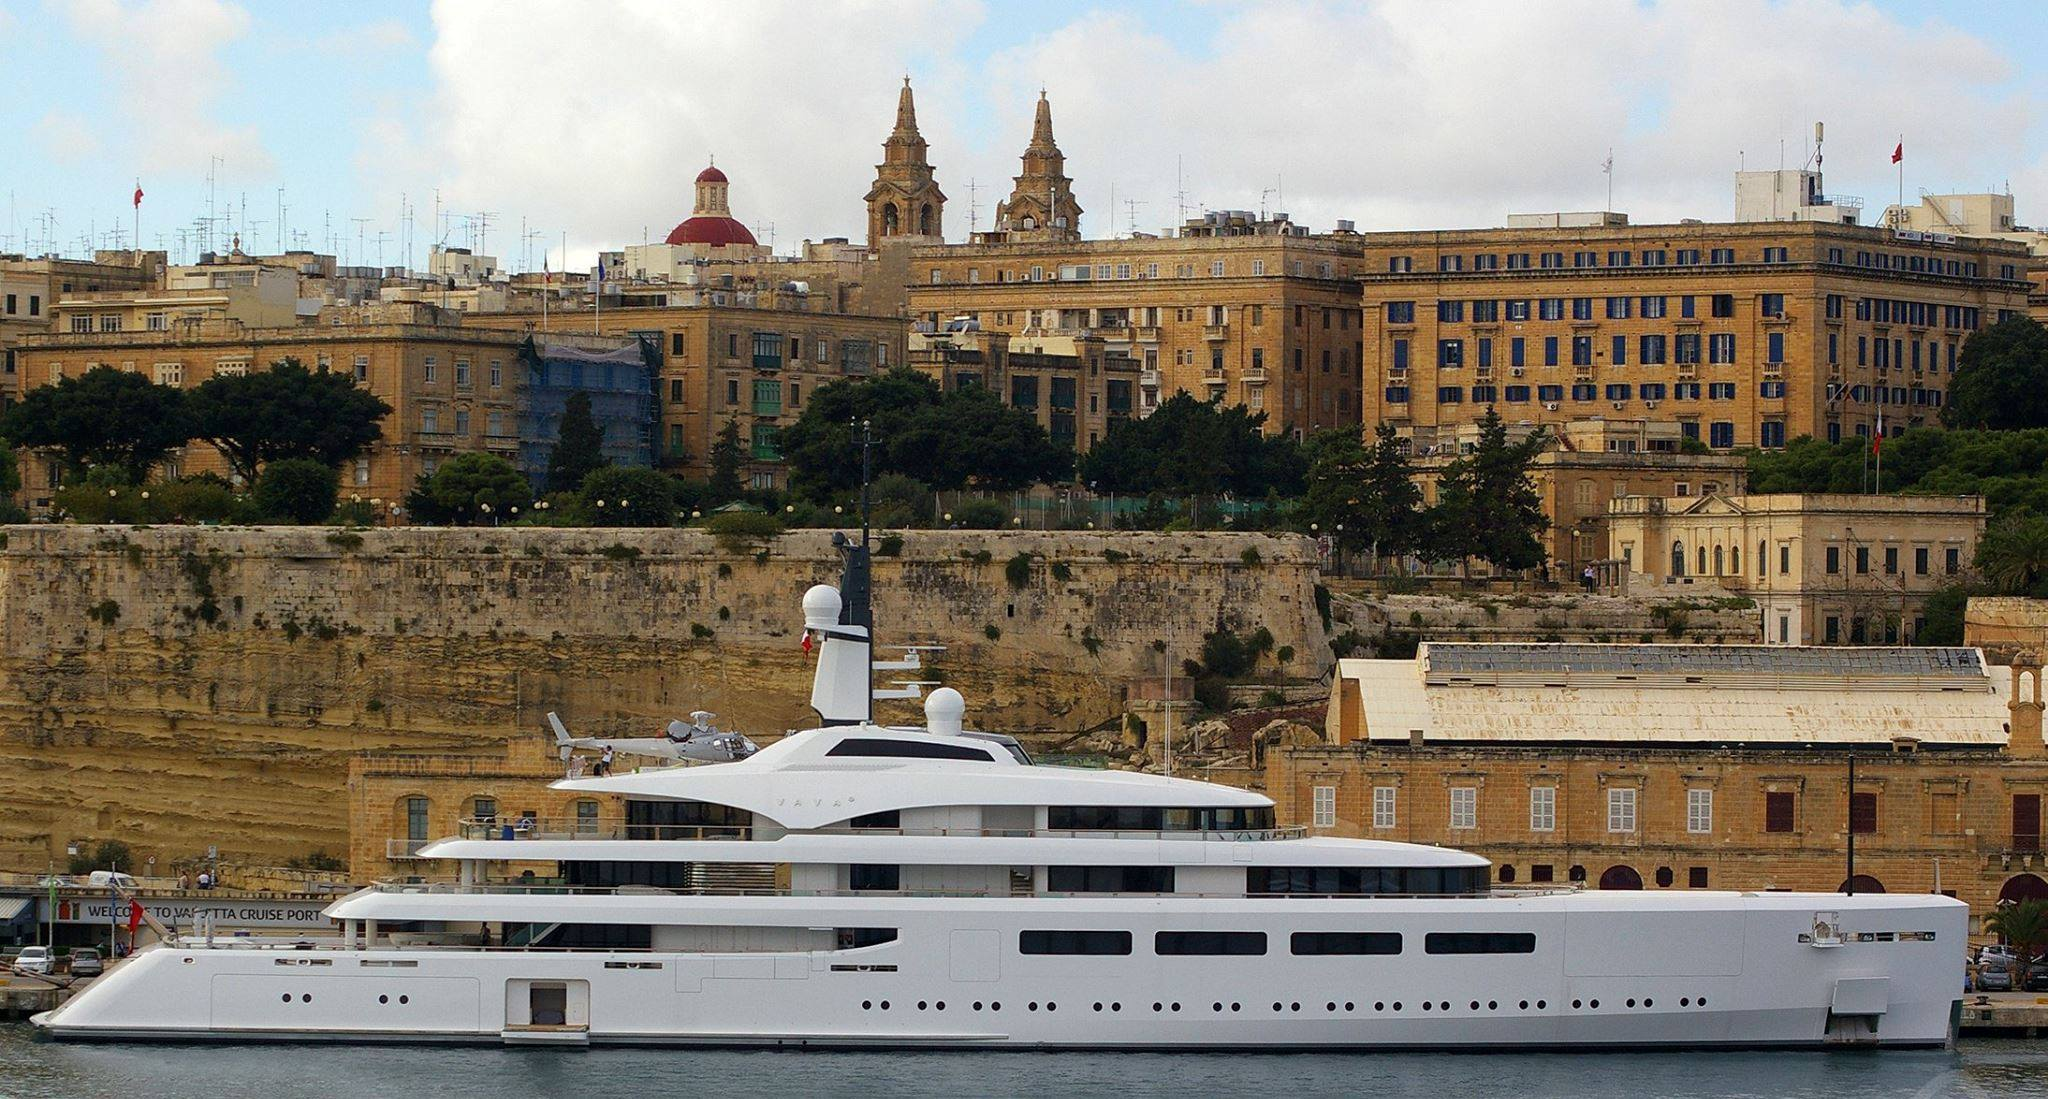 MalDia 01 (21-01-15) The ultimate status symbol! Britain's richest woman Kirsty Bertarelli's £100 million super yacht Vava II in Malta's Grand Harbour